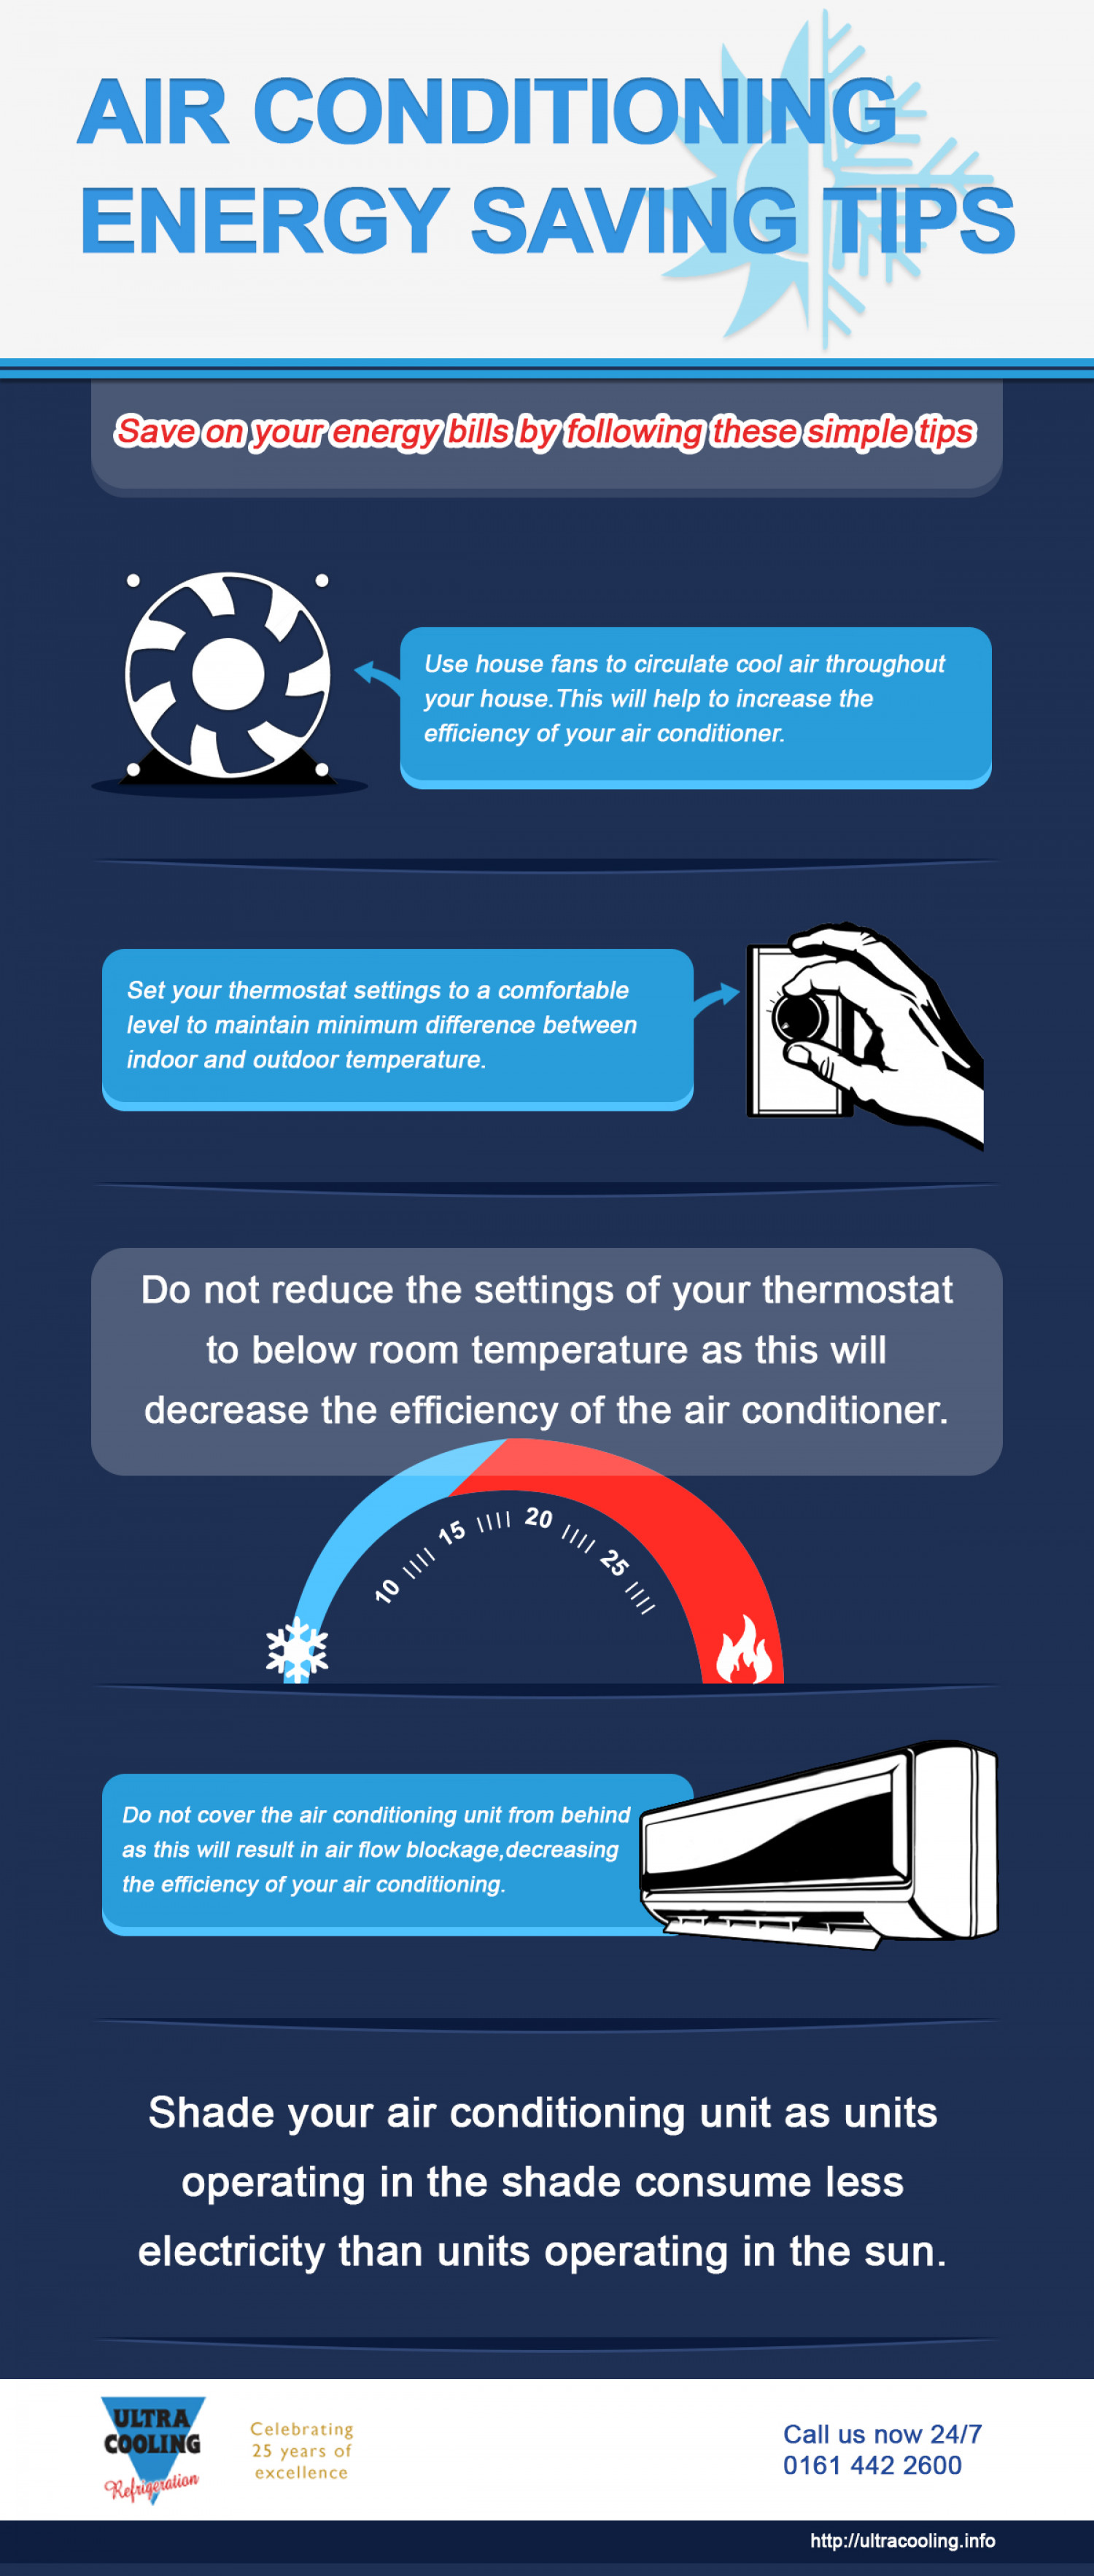 Saving energy air conditioning tips gamefowl